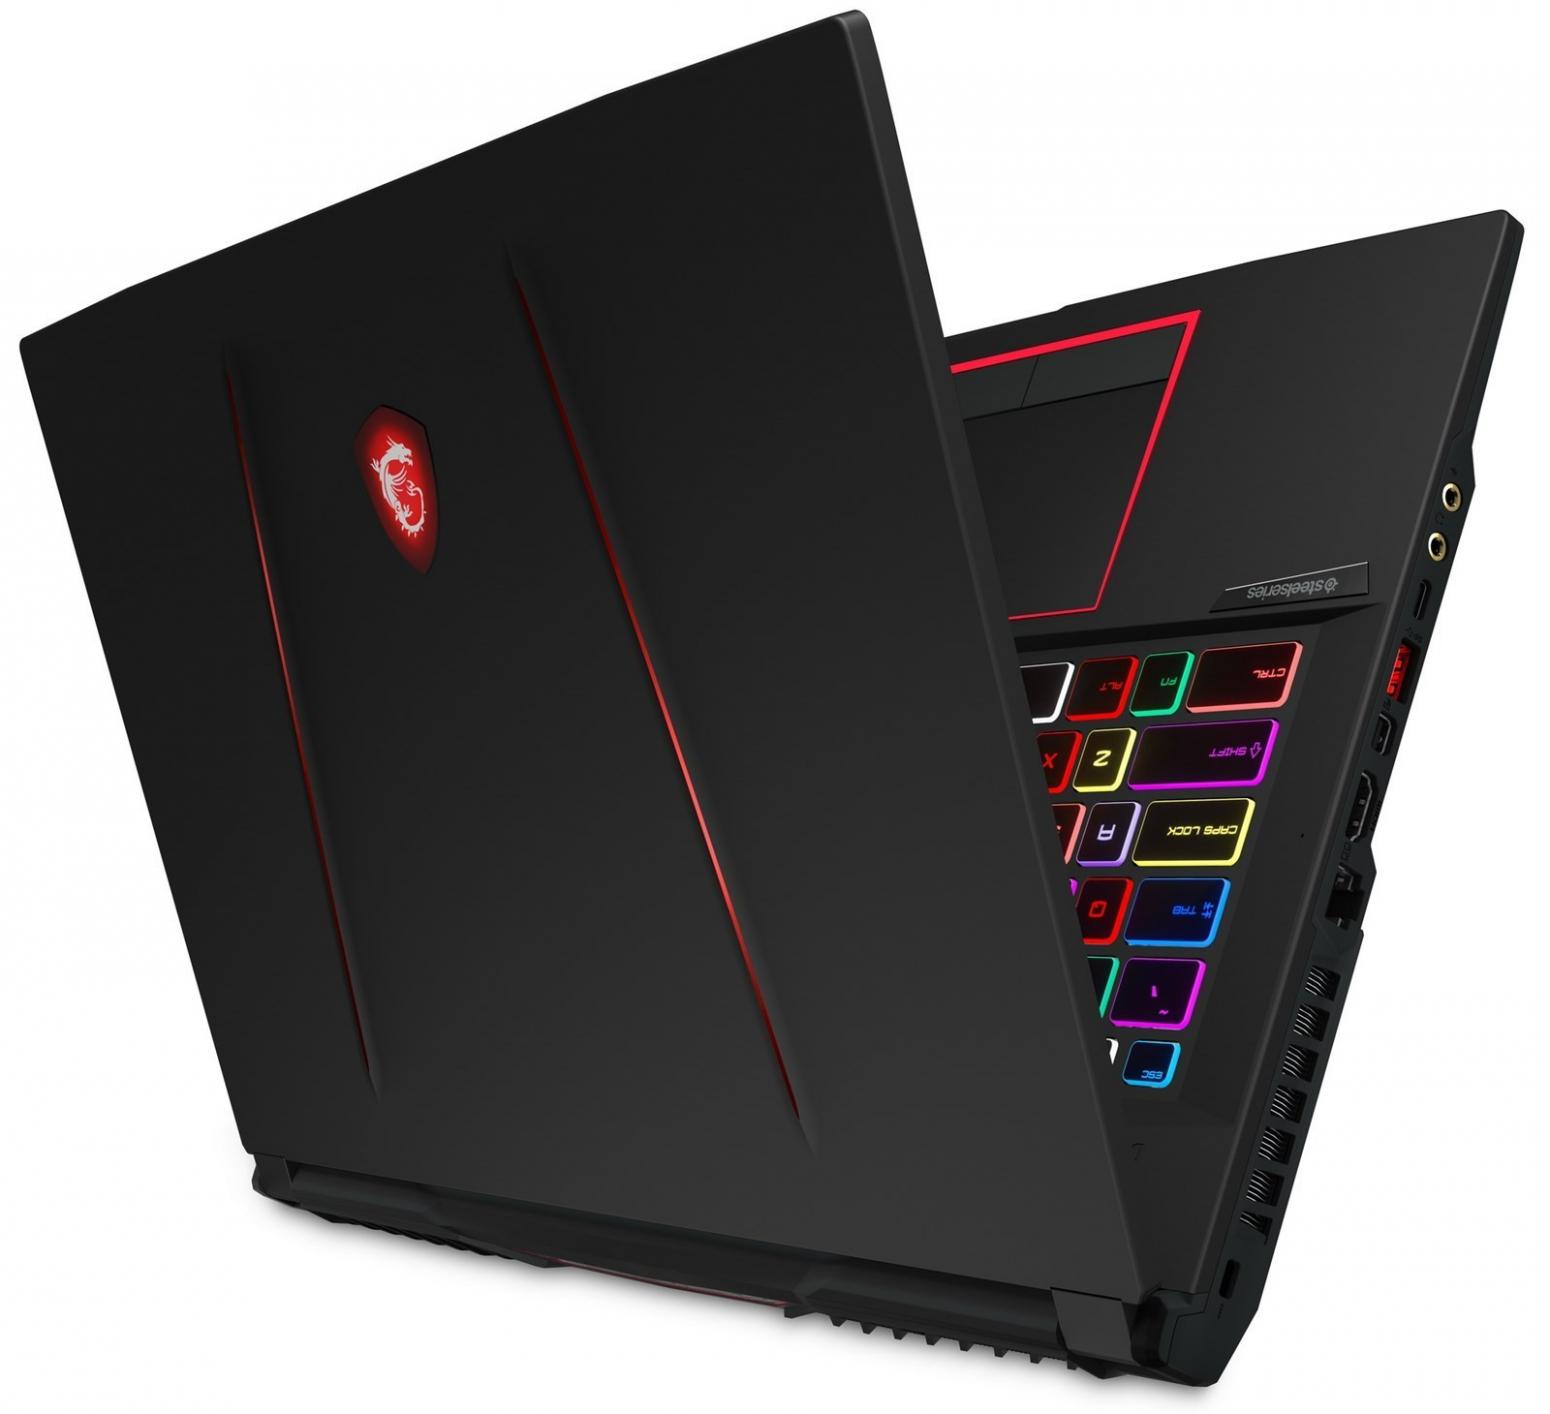 Ordinateur portable MSI GE75 8SG-059FR Raider - RTX 2080, 144Hz - photo 9